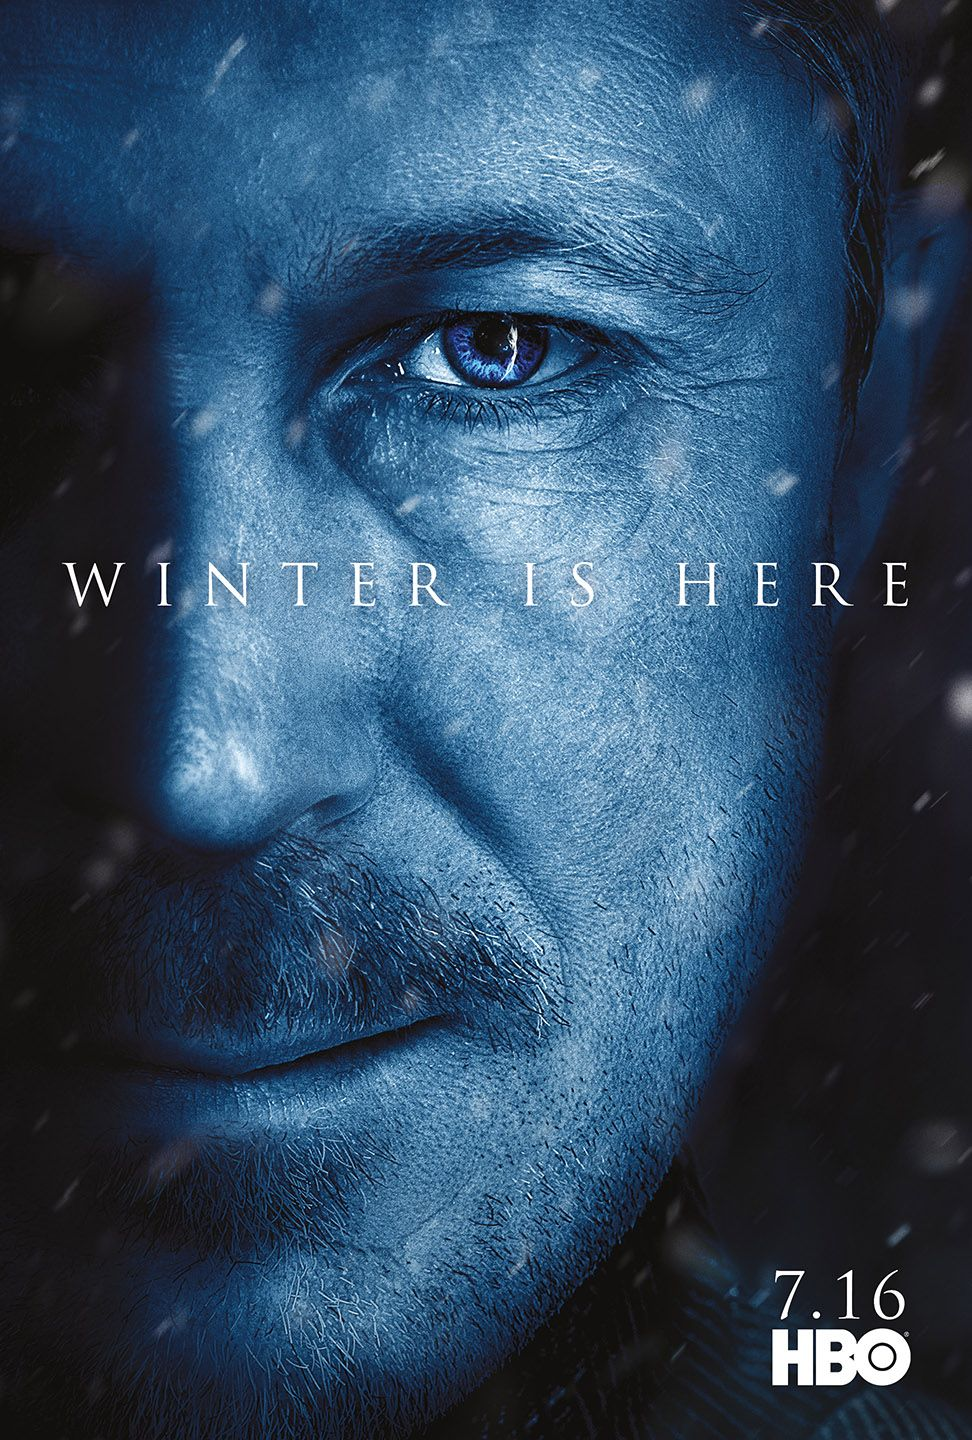 In Addition To Giving Us A Brand New Trailer Hbo Has Gone Above And Beyond And Released 12 New Character Posts For Game Of Th Hbo Theon Greyjoy Winter Is Here